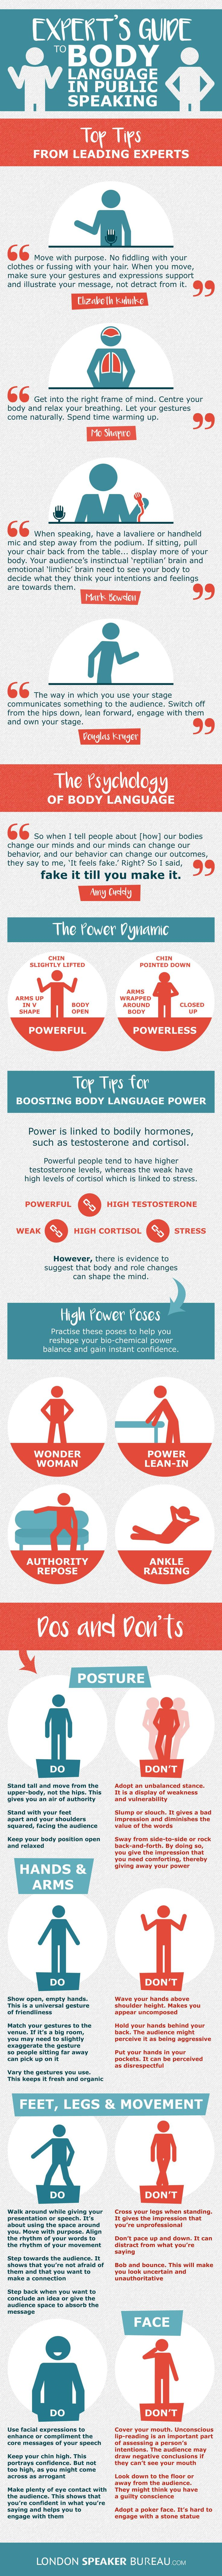 27 Best Infographic Images On Pinterest Interesting Facts Writing What Is Electric Circuit Ency123 Learn Create Have Fun Experts Guide To Body Language In Public Speaking